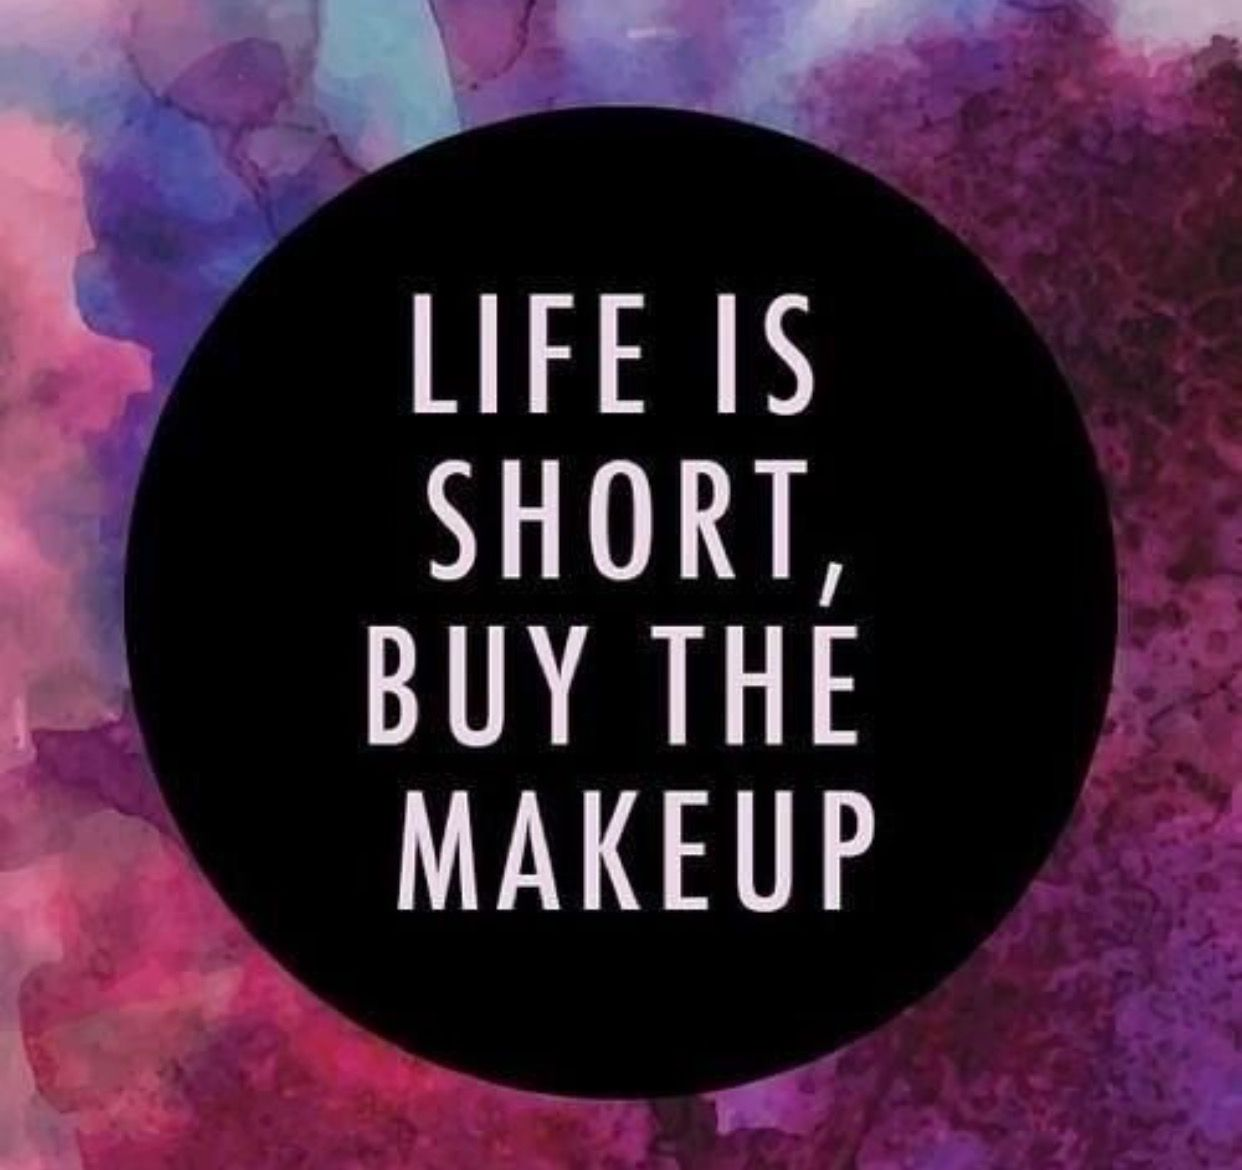 Life's to short ladies! Try Younique out, you won't regret it